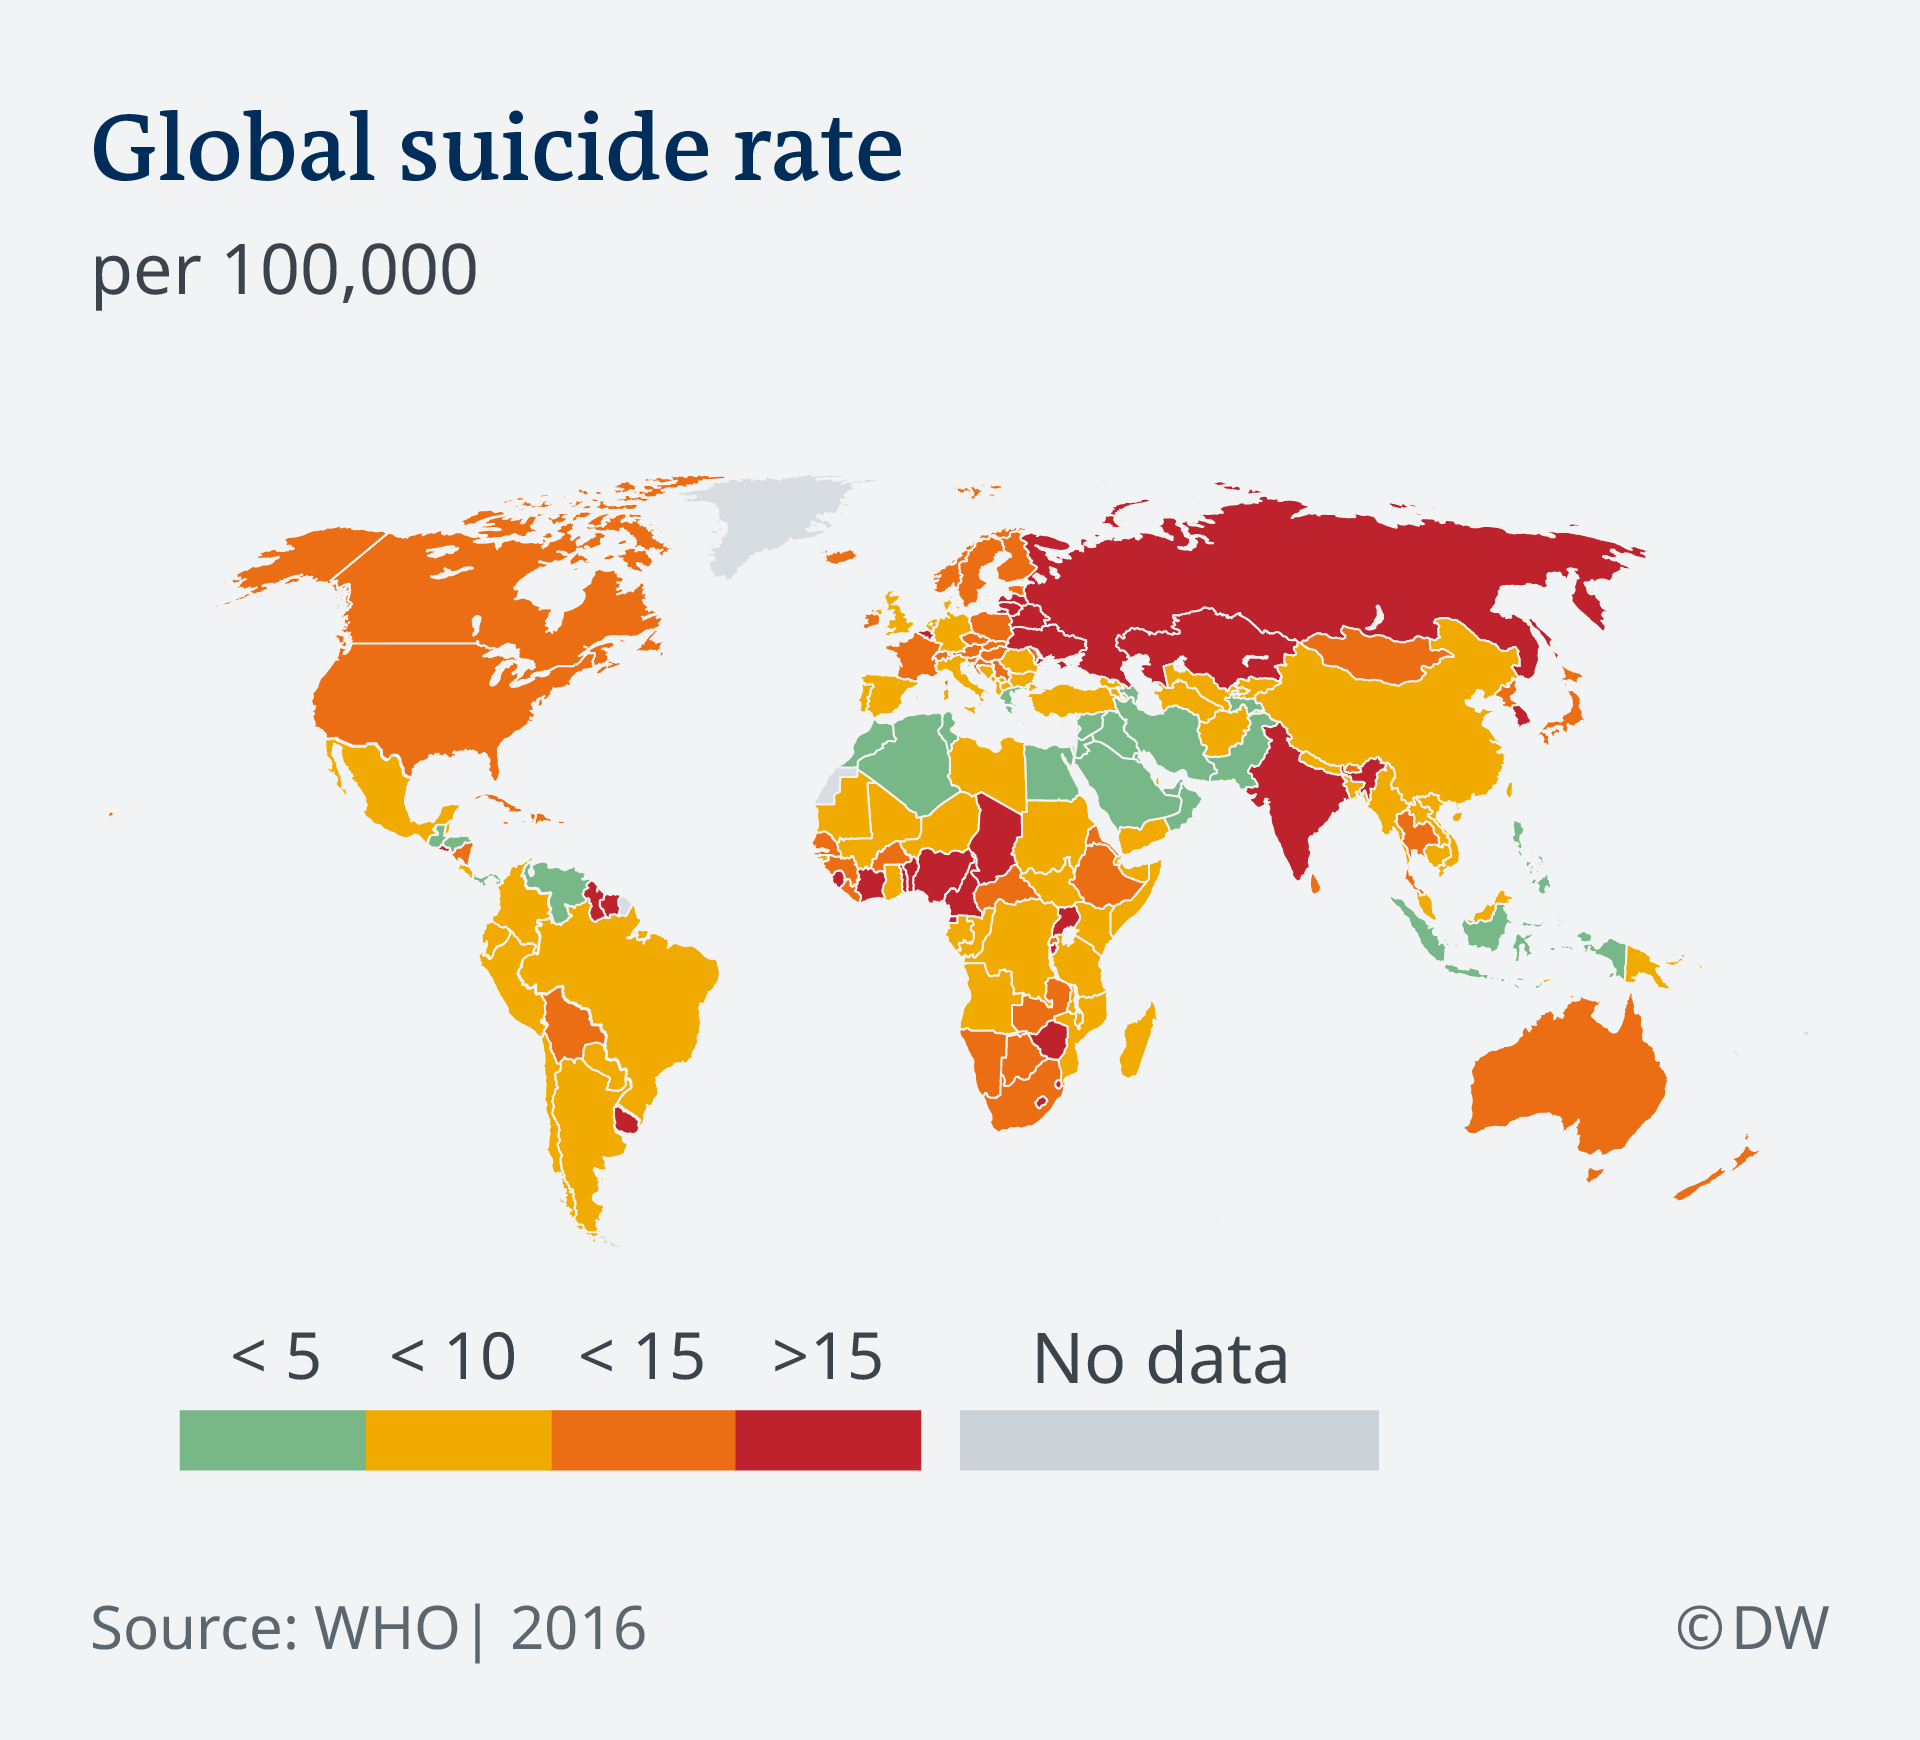 infographic showing global suicide rate